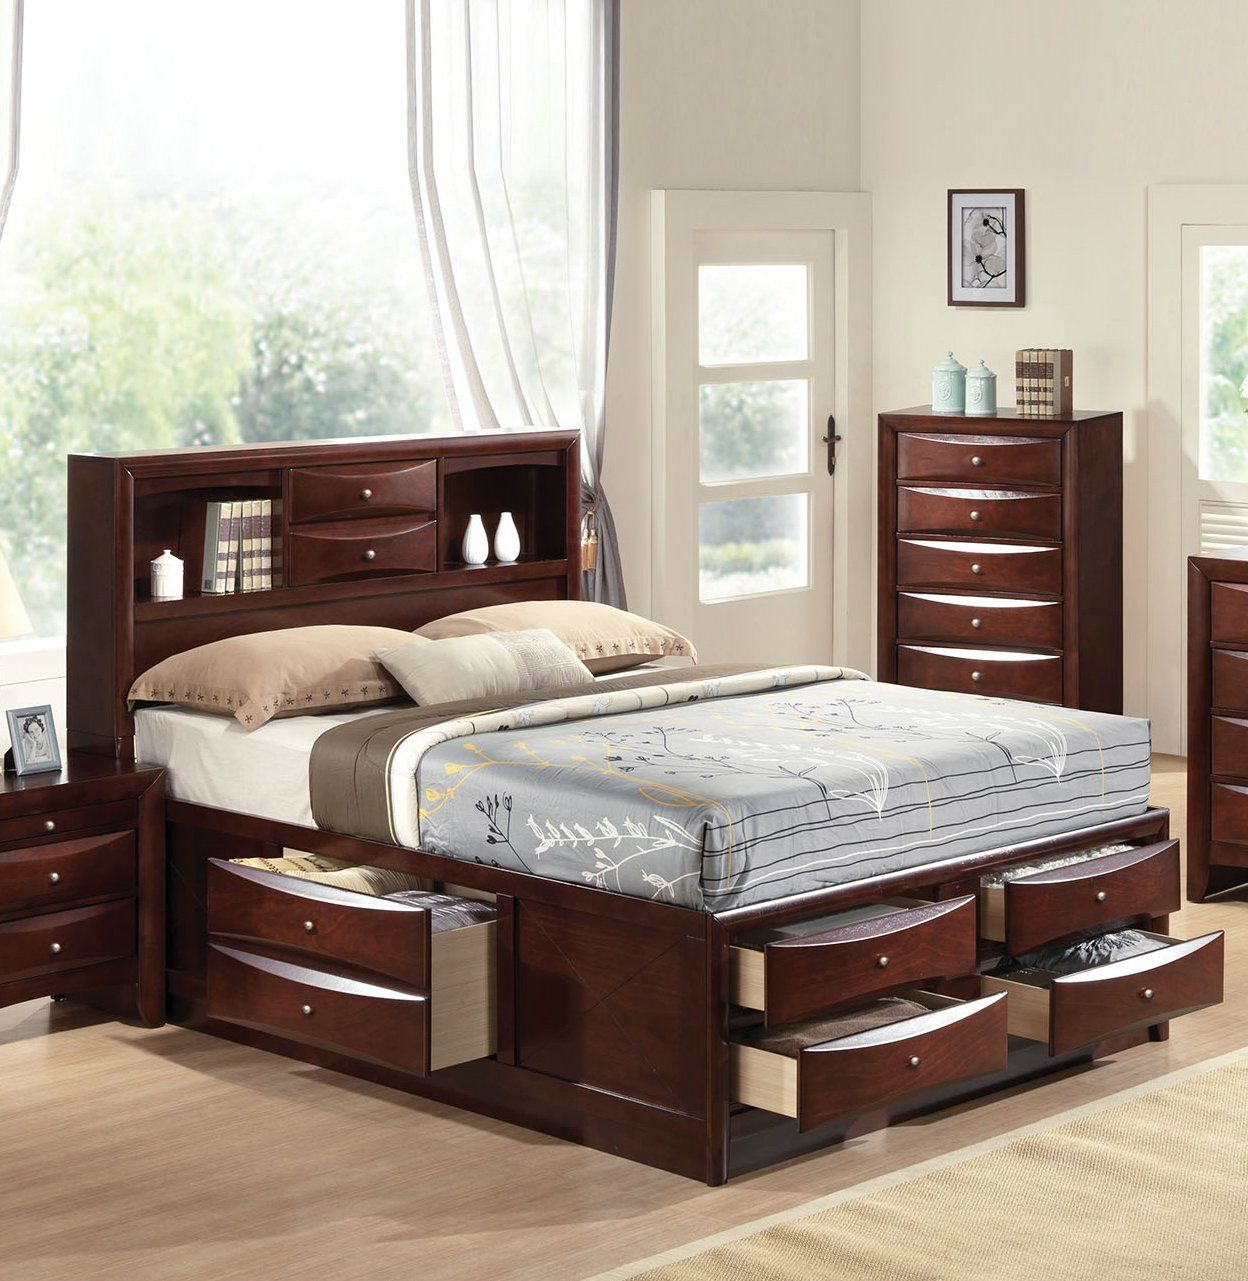 Acme 21596ek Ireland Espresso Bookcase King Storage Bed With